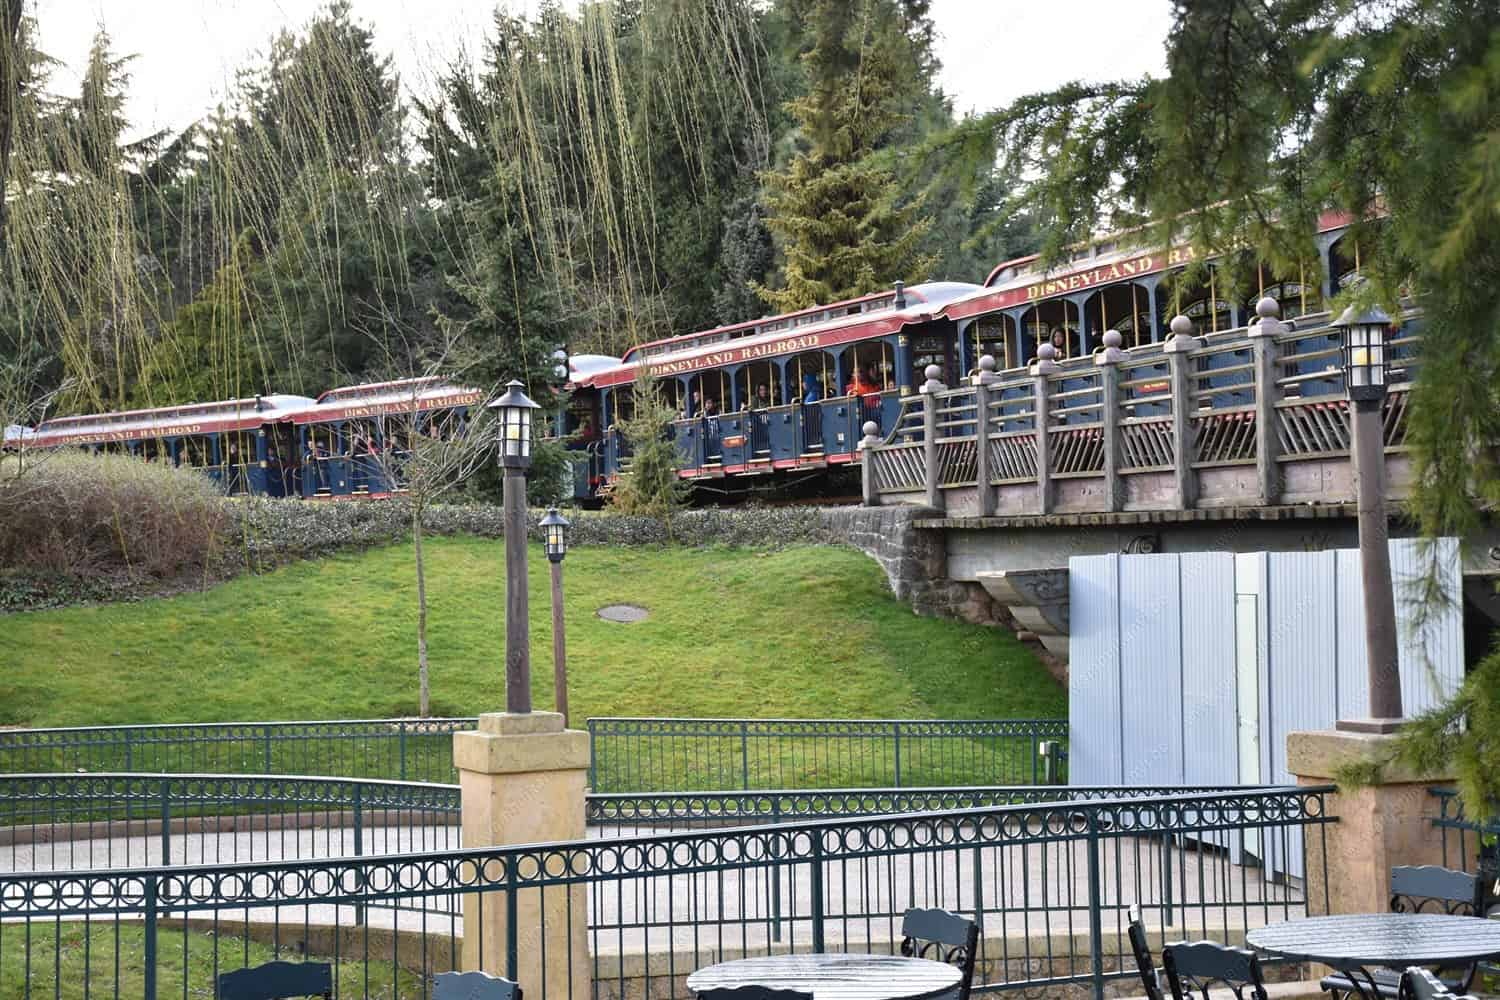 The Disney Rail